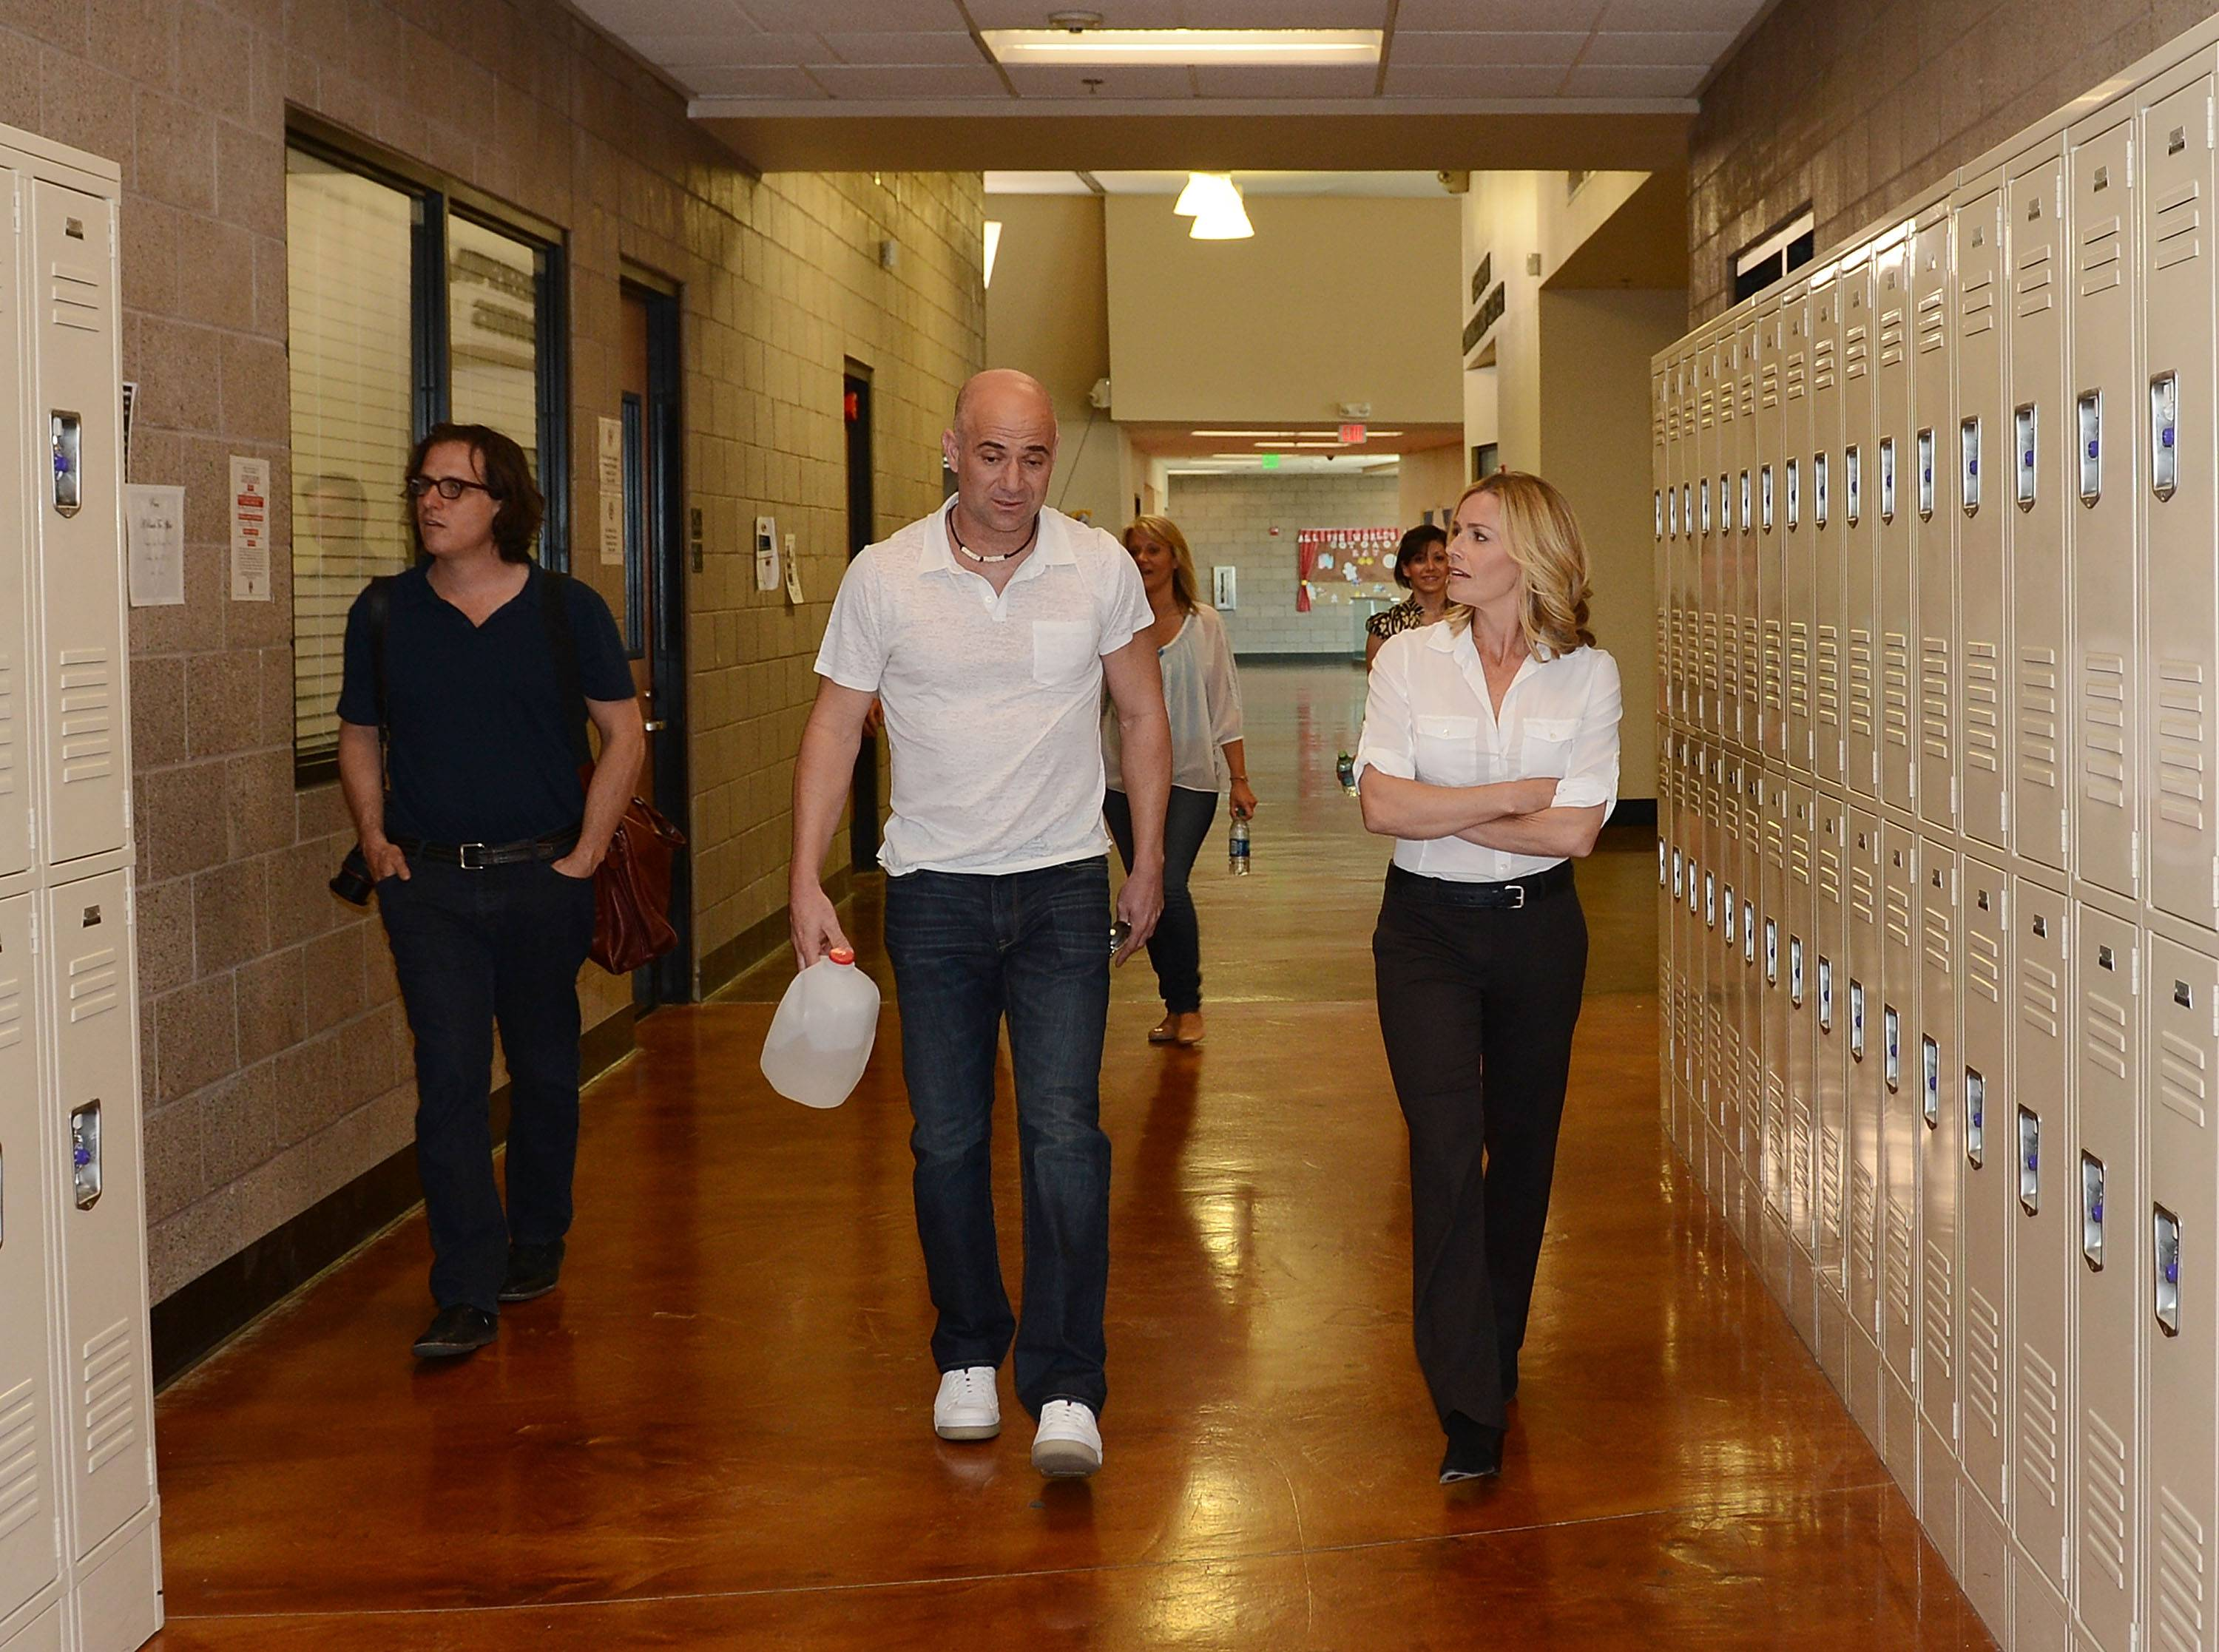 Andre Agassi (C) gives Davis Guggenheim (L) and Elisabeth Shue (R) a tour of the Andre Agassi College Preparatory Academy. Photos: Denise Truscello/WireImage